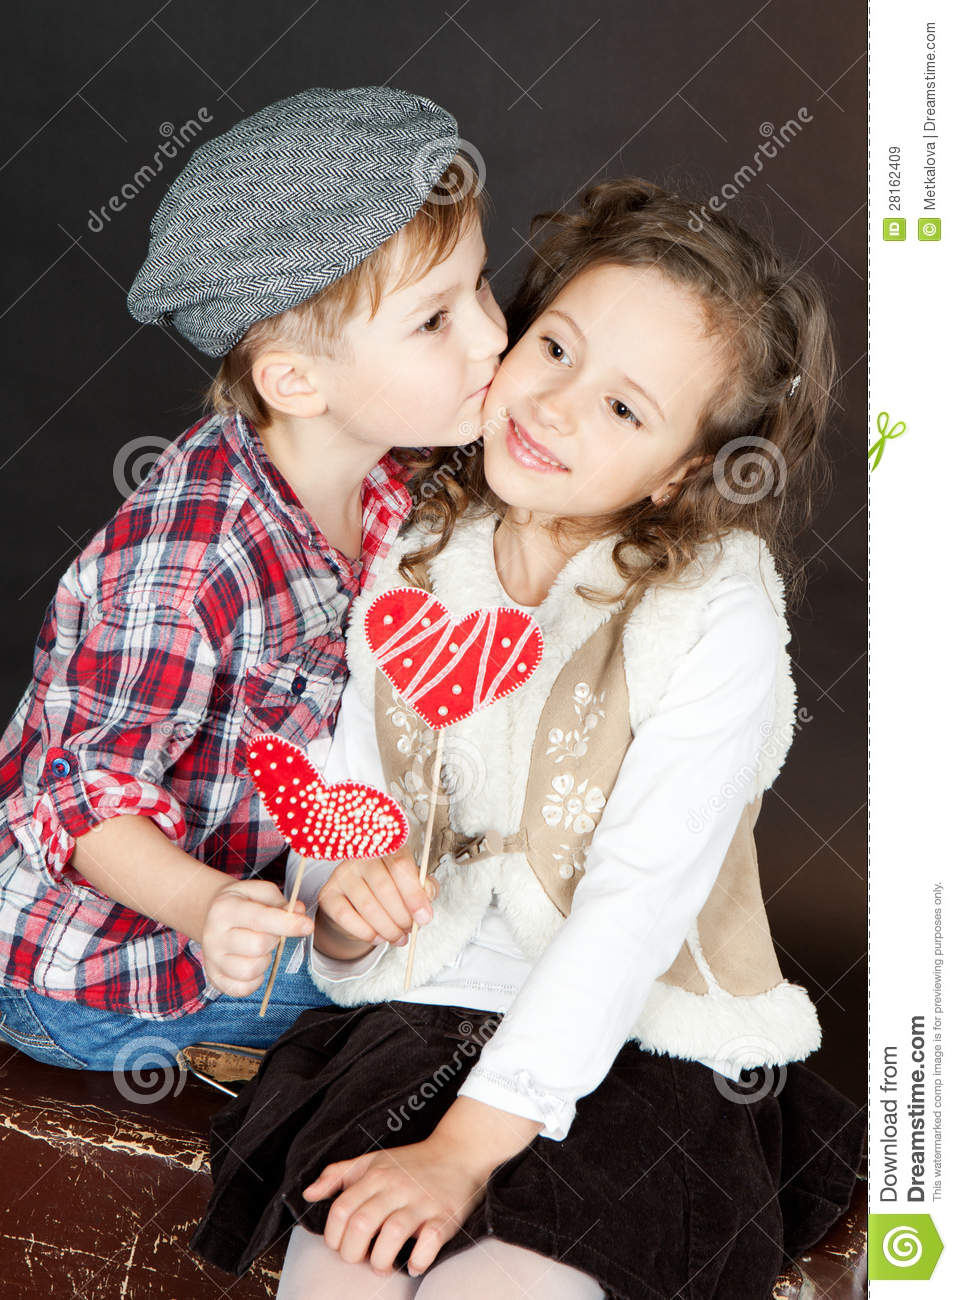 Funny child Love Wallpaper : Funny Little couple In Love Stock Image - Image: 28162409